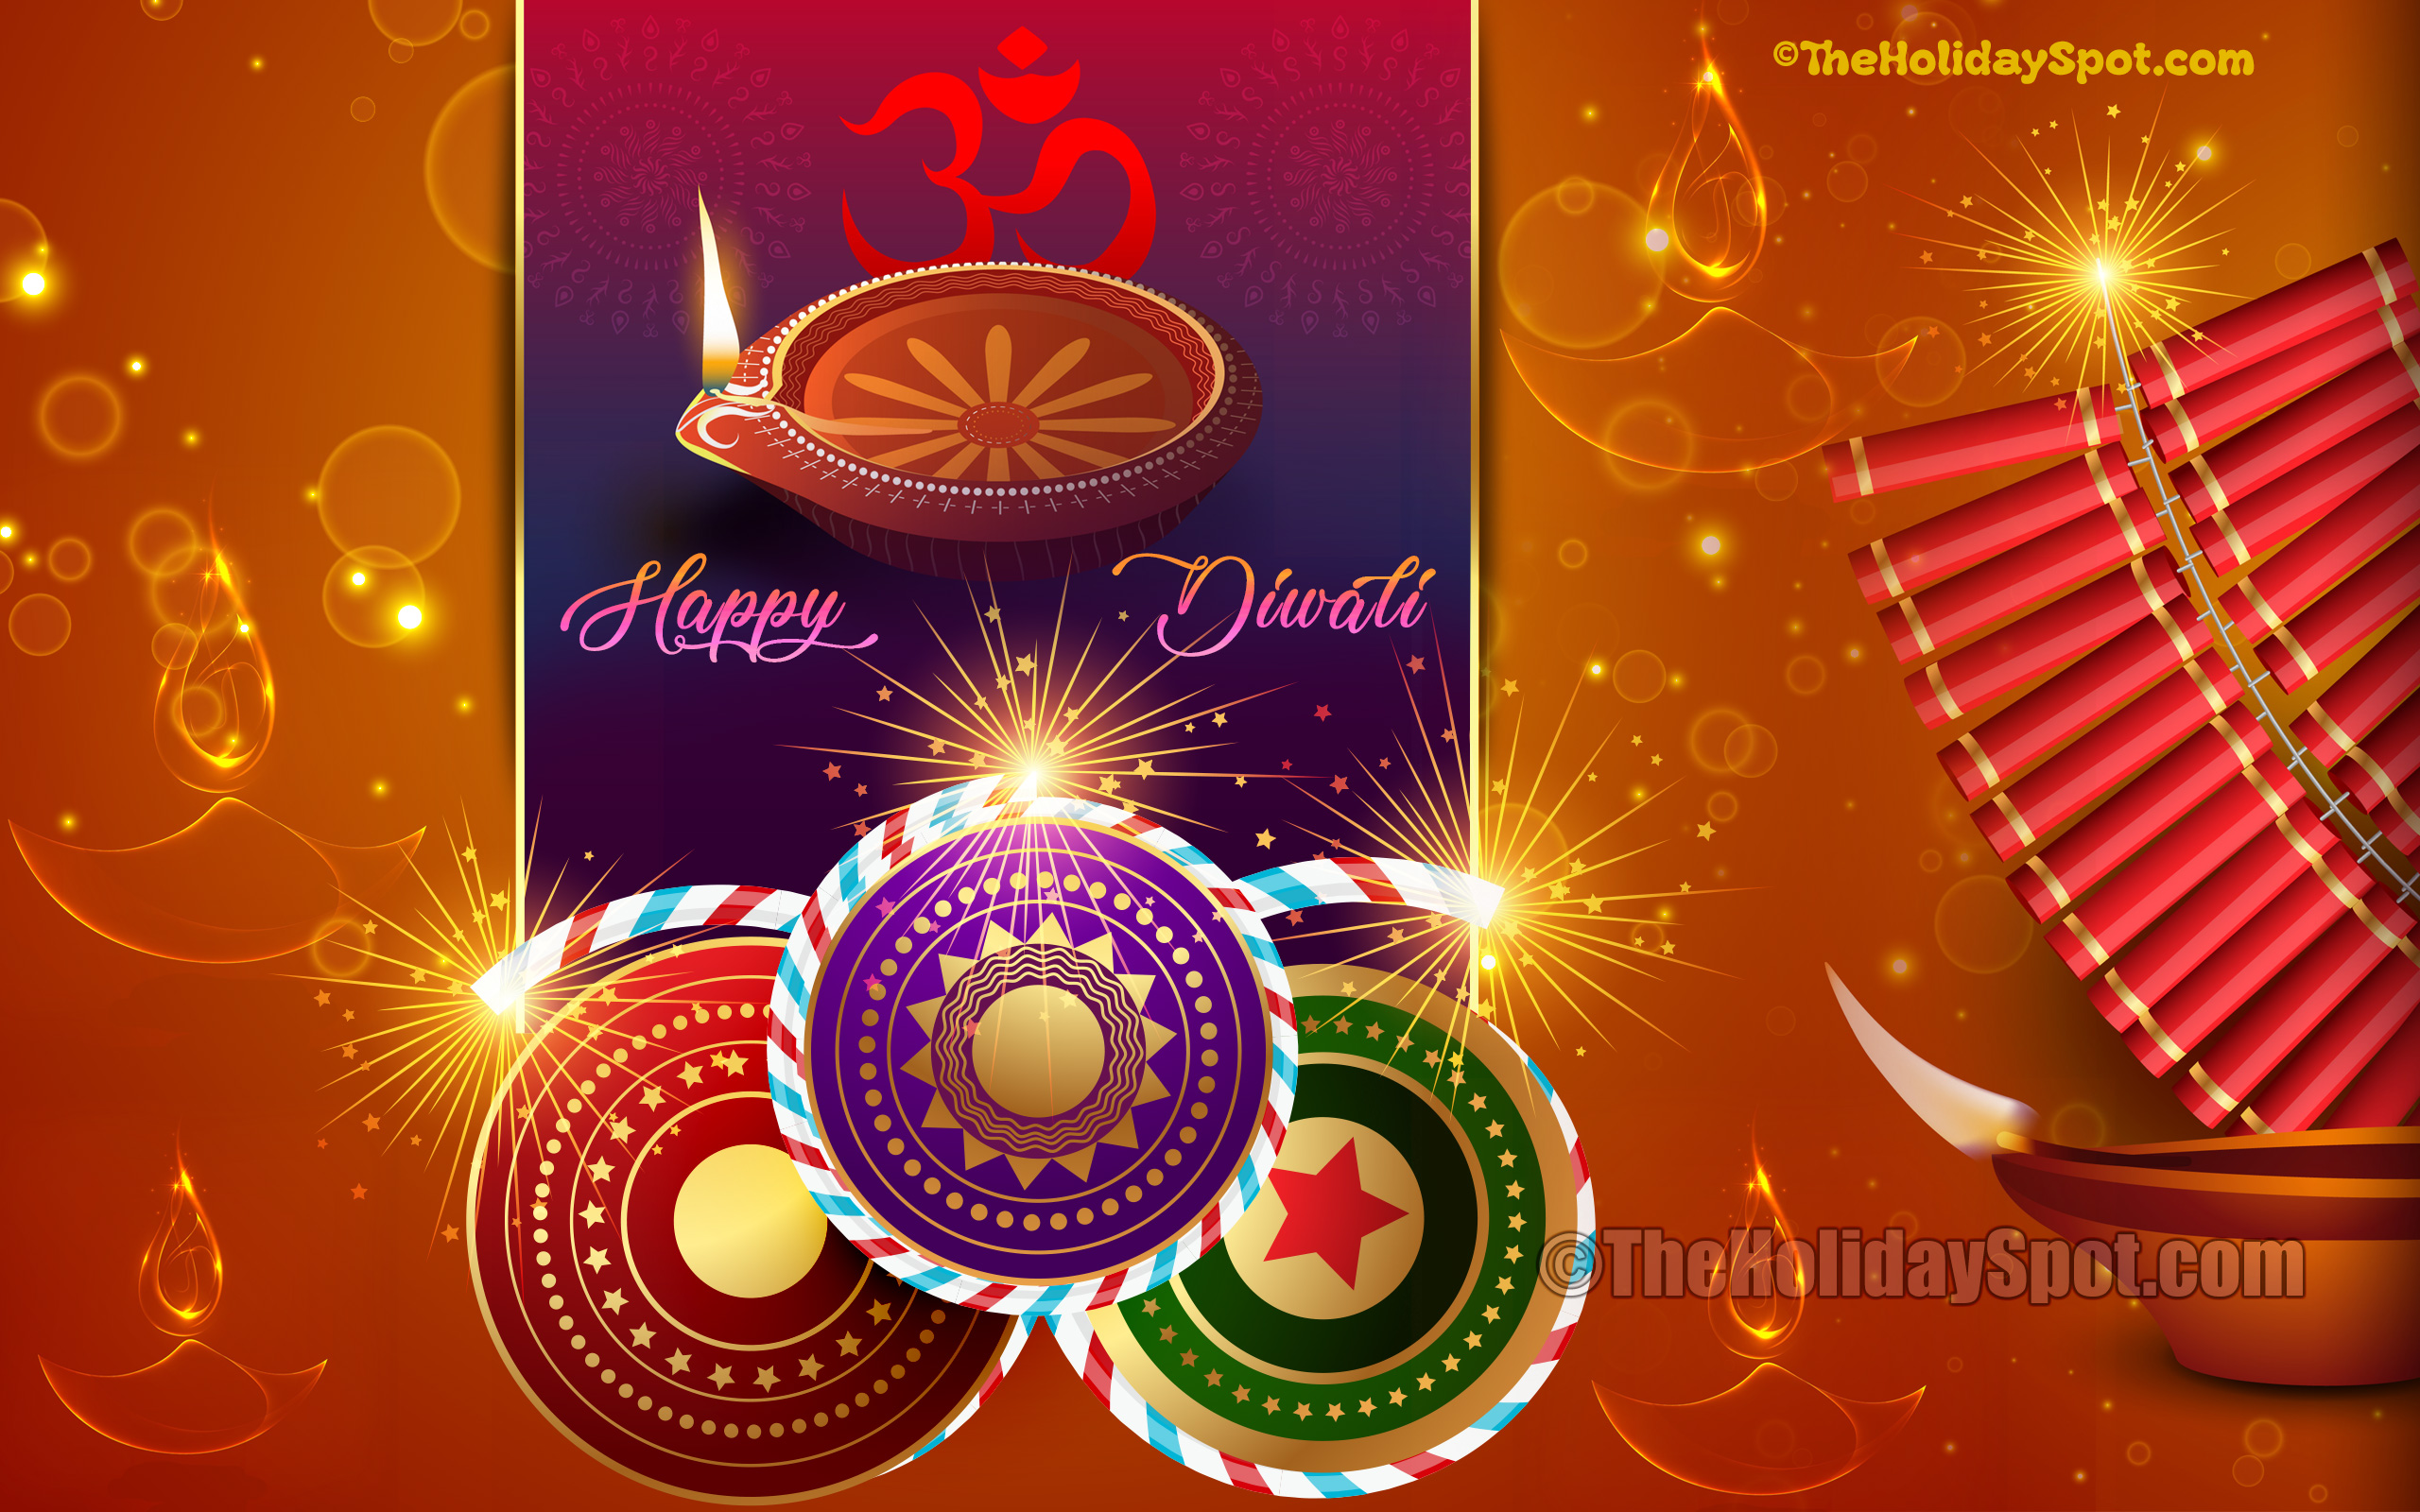 Happy Diwali Wallpapers And Backgrounds Happy Diwali Hd